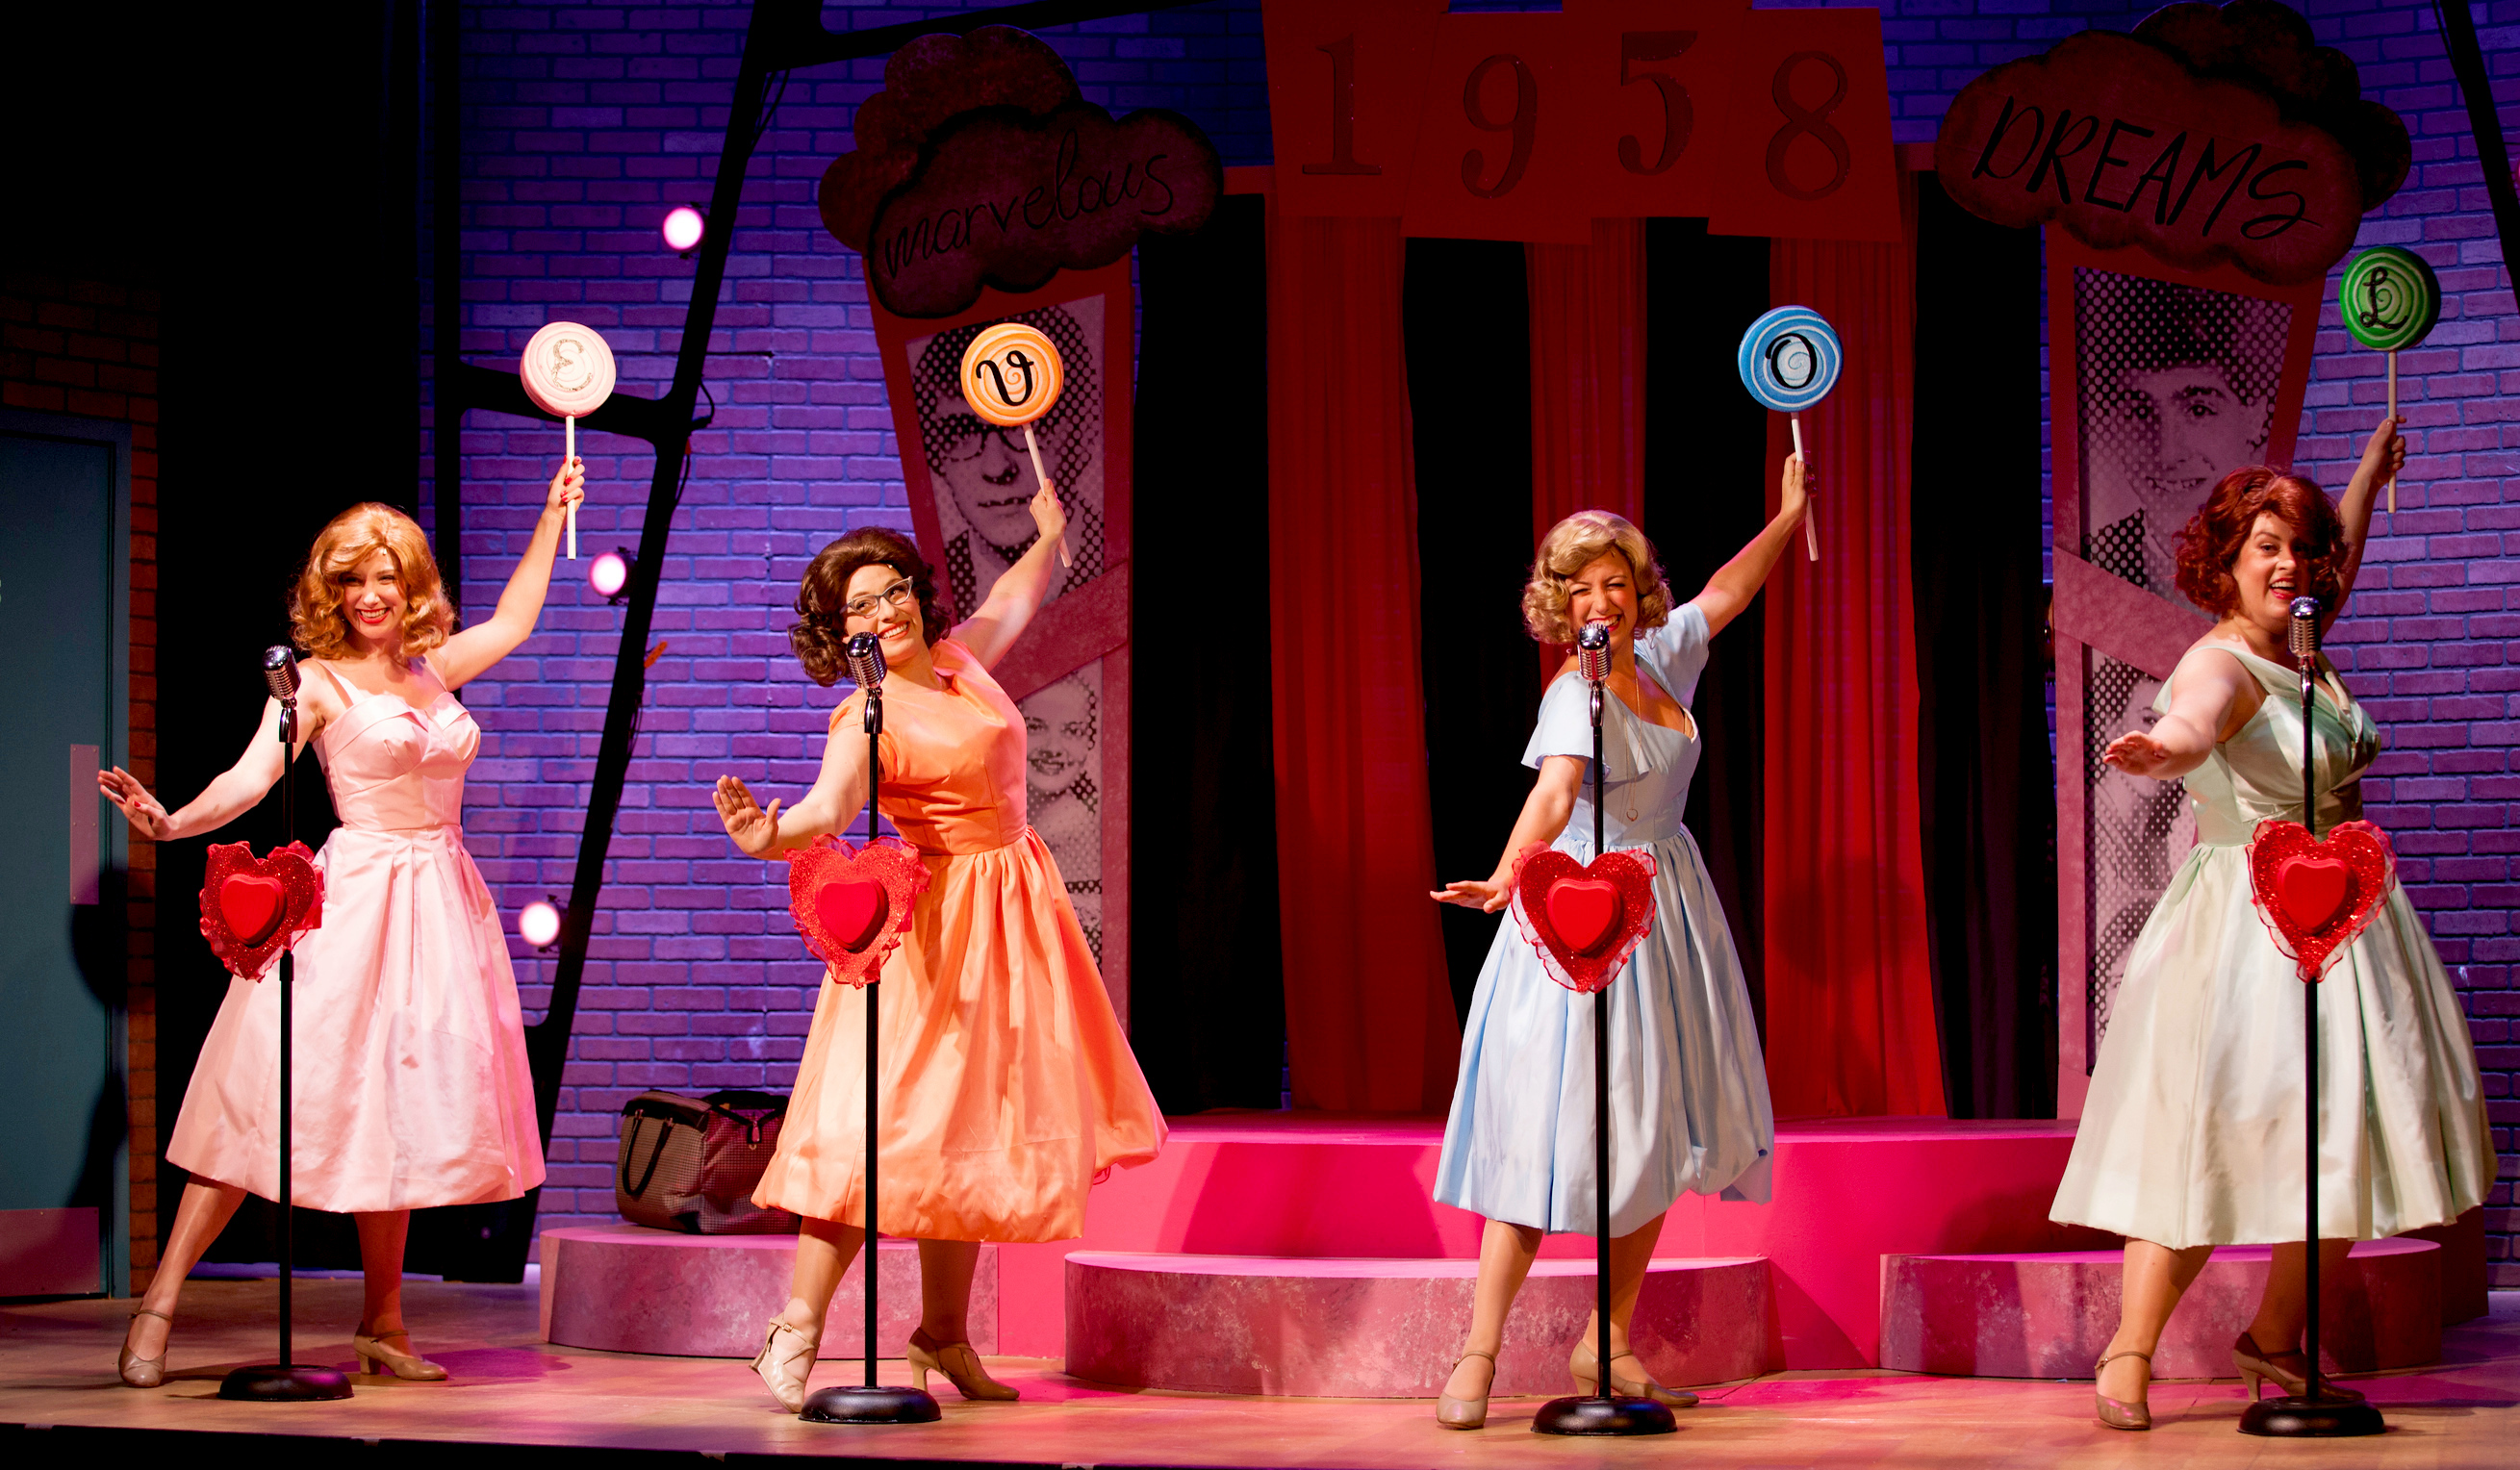 Kelsey-Boze-l.-Afton-Quast-Kelly-Klopocinski-Kate-Ponzio-in-The-Marvelous-Wonderettes_derek